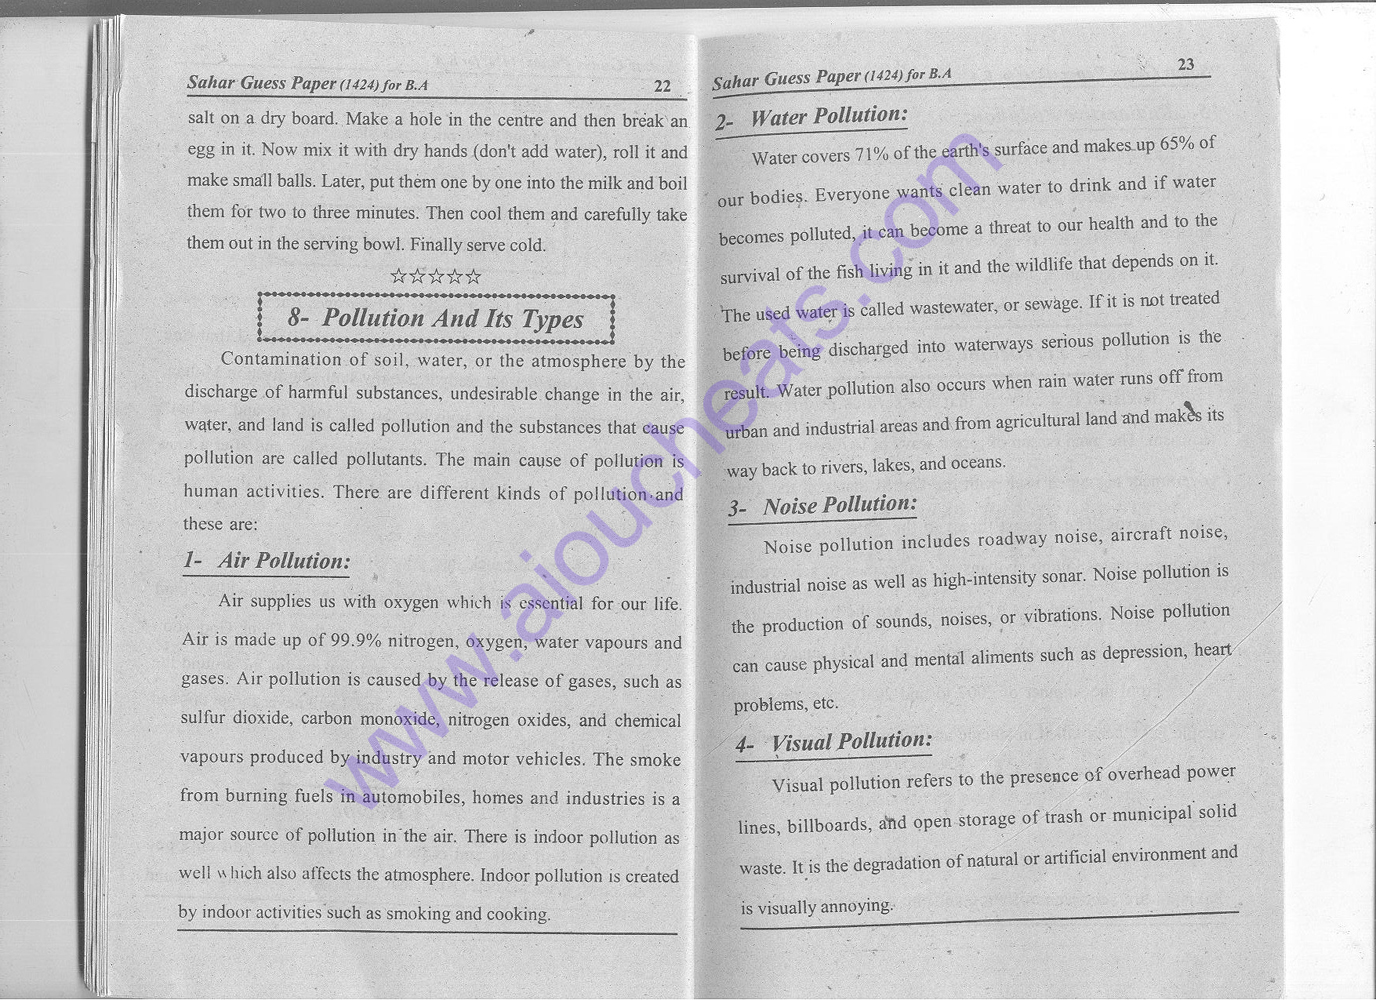 english essay free download Free essays, research papers, term papers, and other writings on literature, science, history, politics, and more.